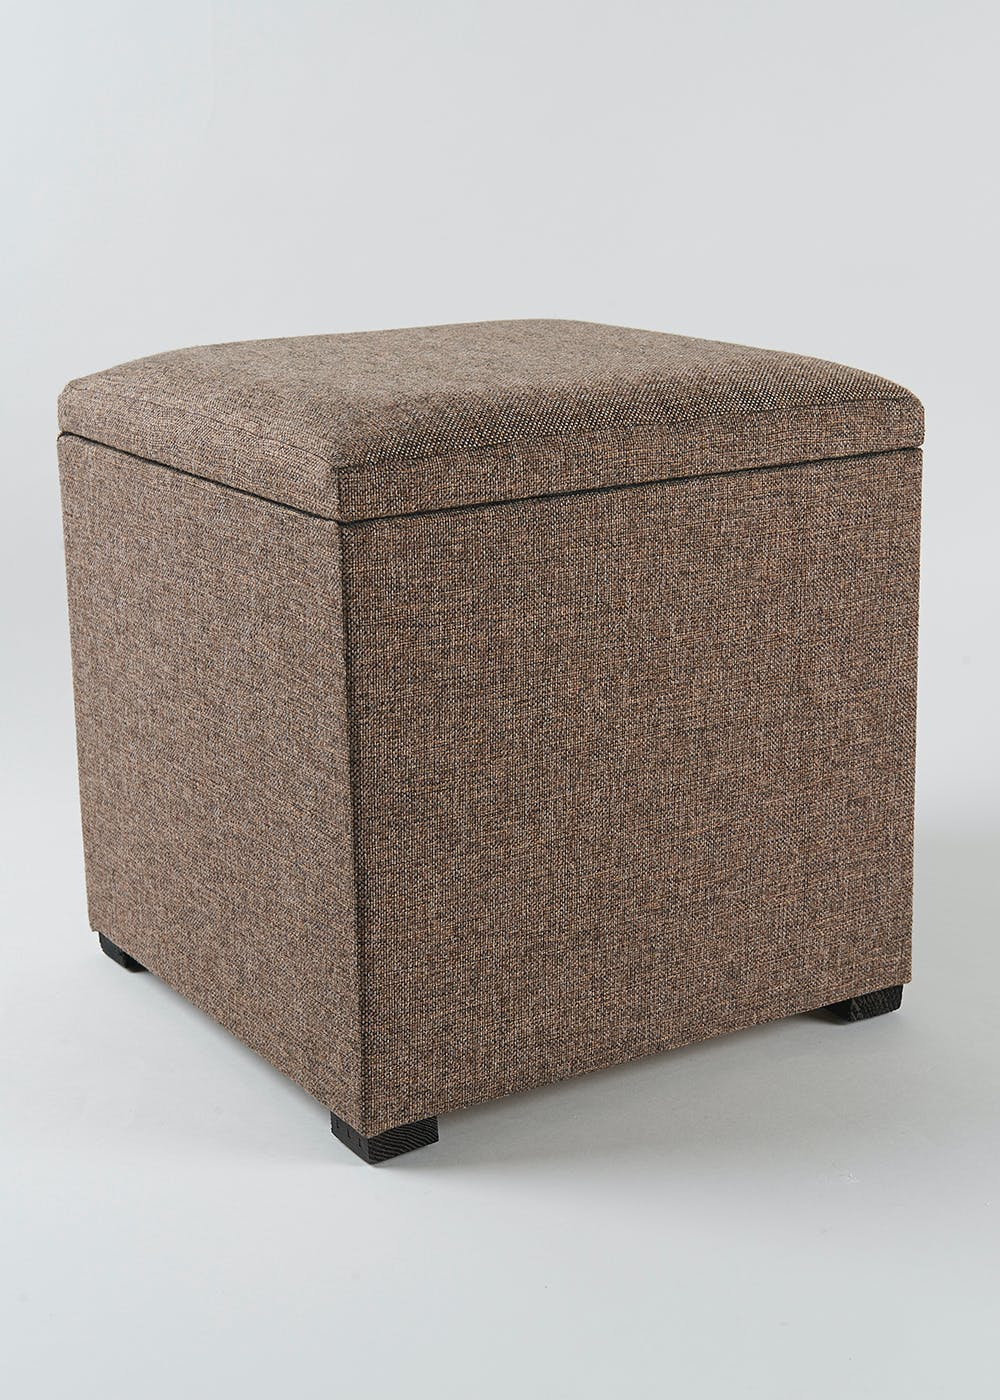 Cheap Footstools With Storage Homeware Living Room Storage Matalan